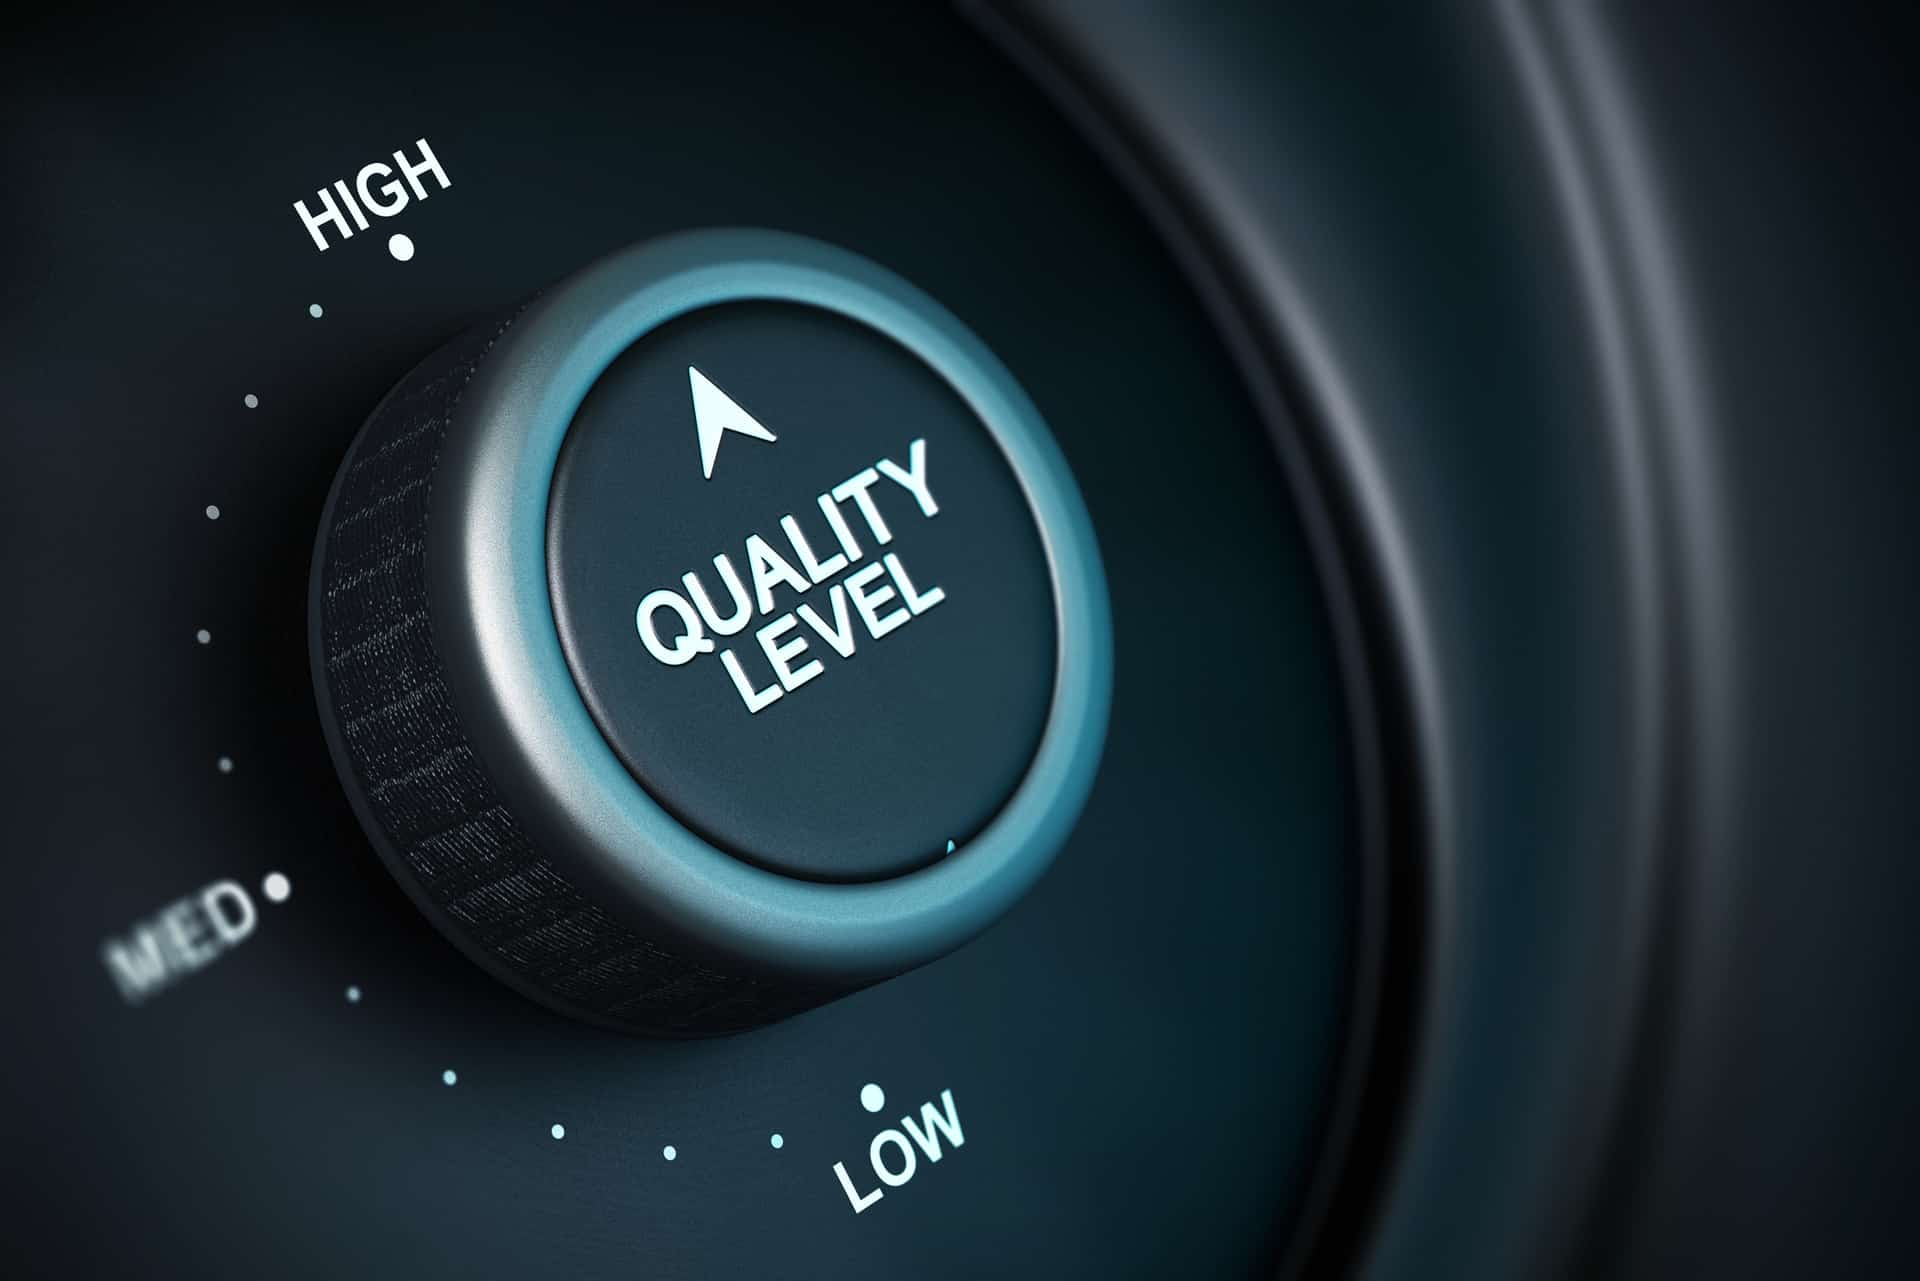 high-quality website writing services